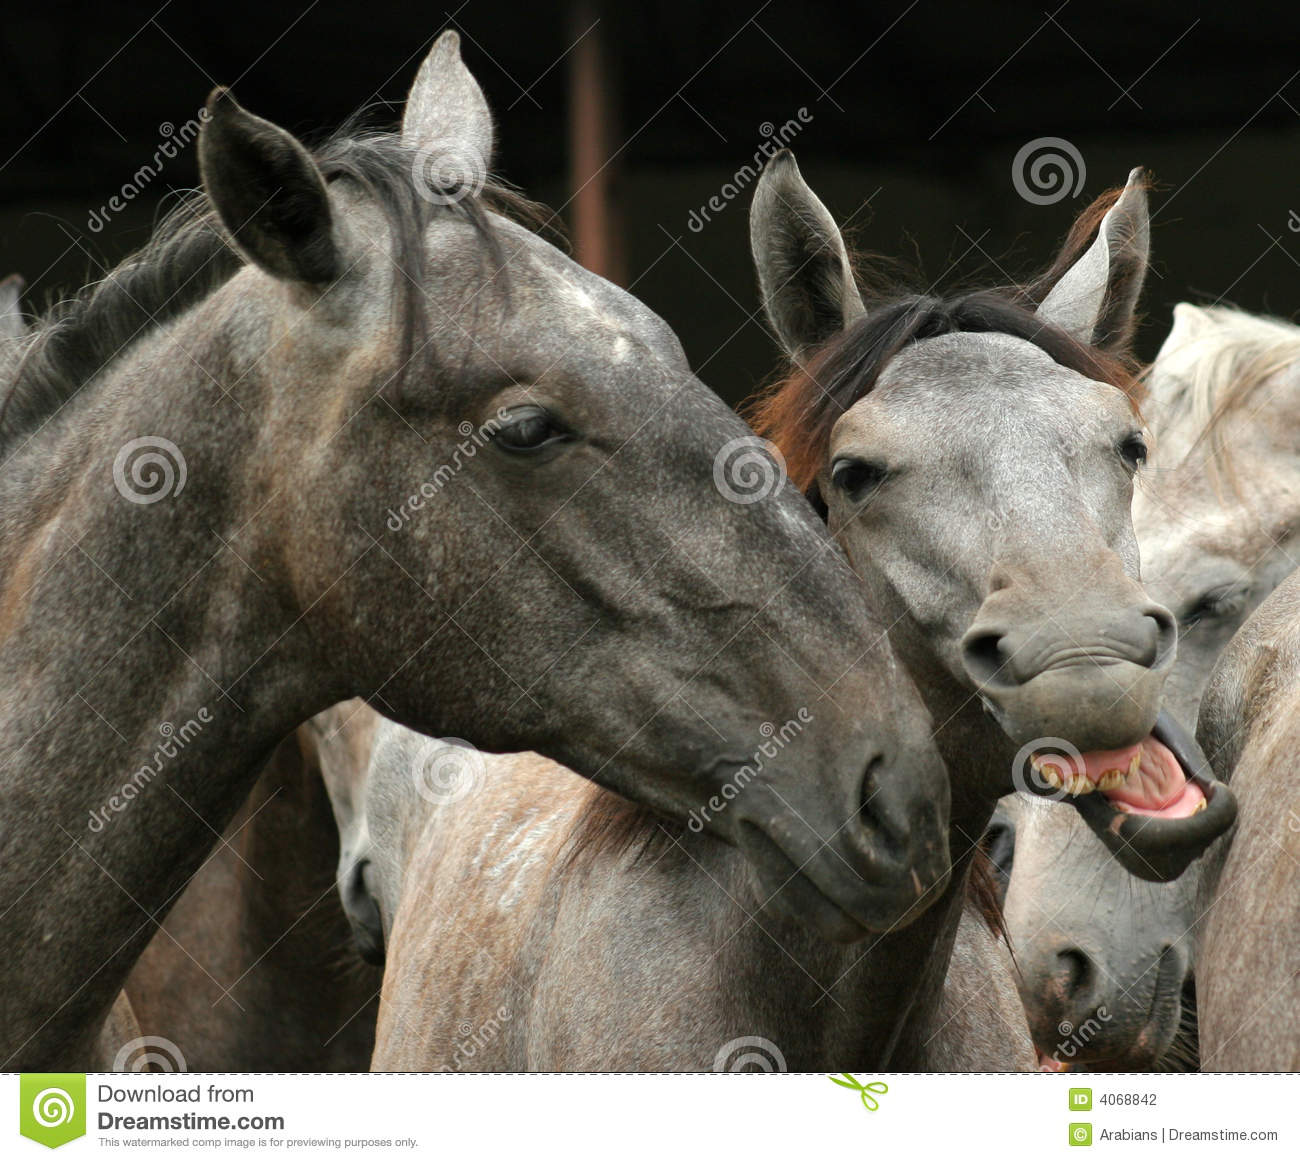 Horses Silly Photos Free Royalty Free Stock Photos From Dreamstime